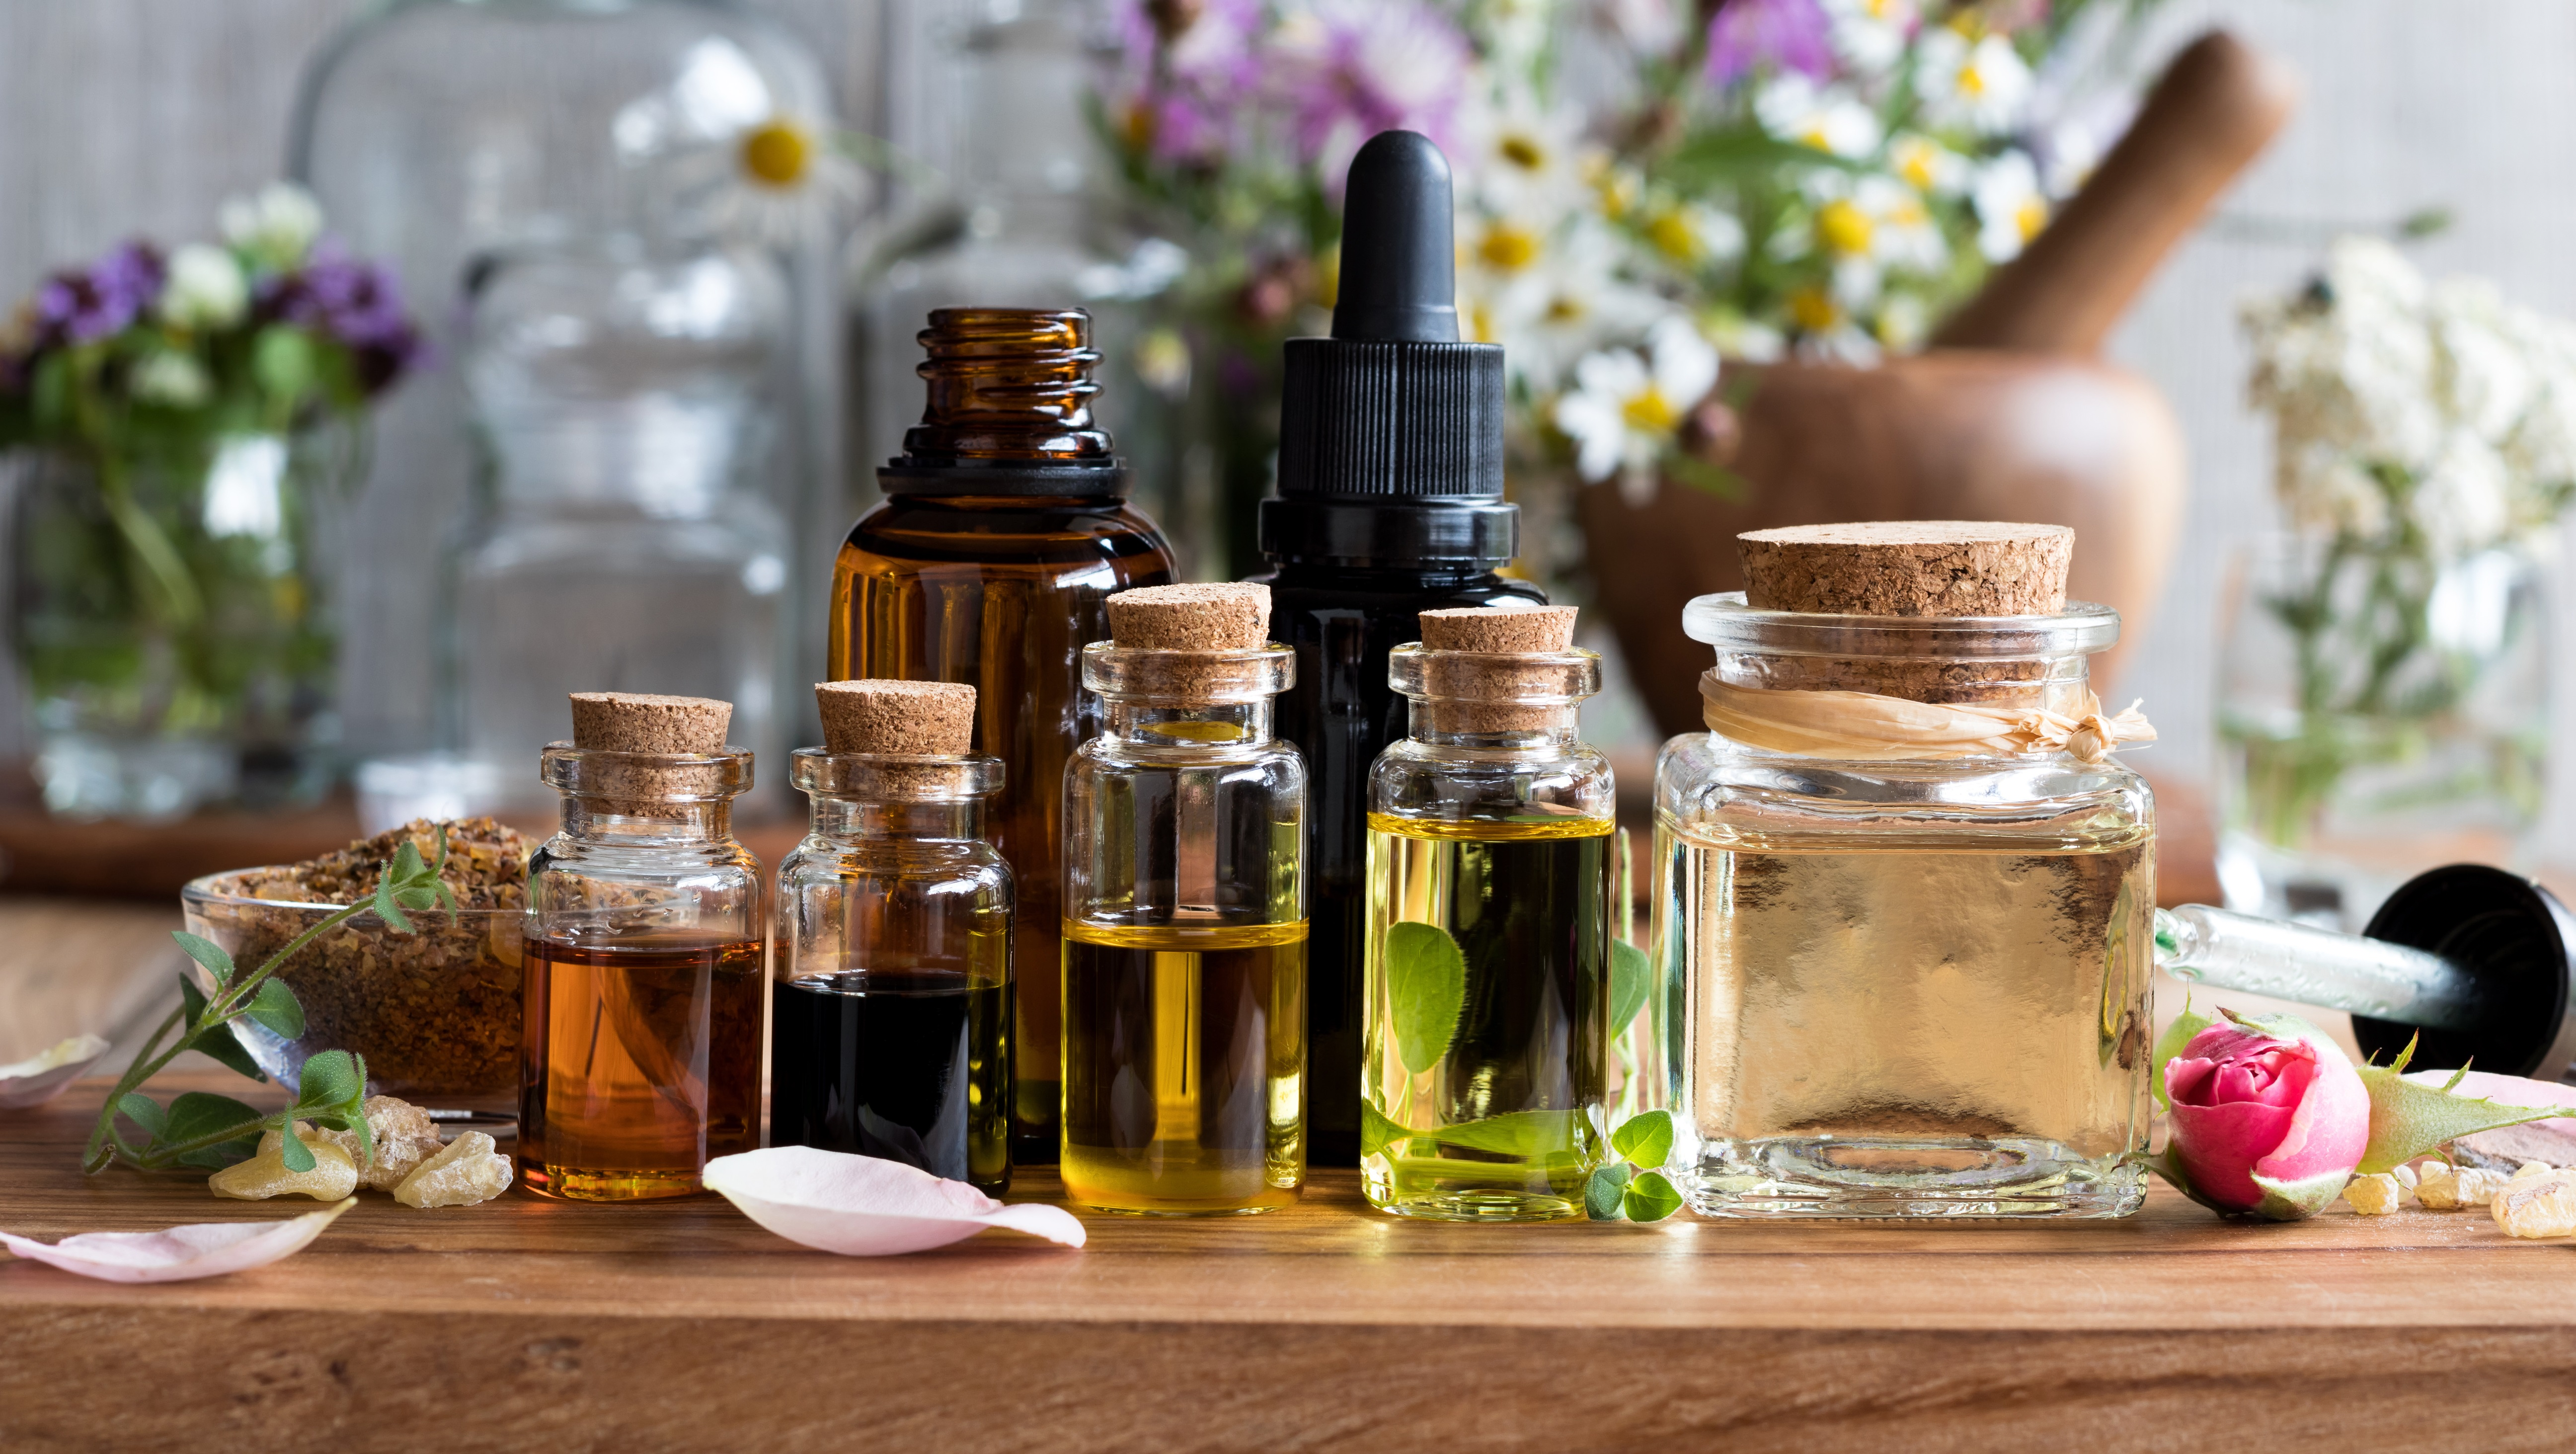 Is doTERRA better than Young Living? (full review)